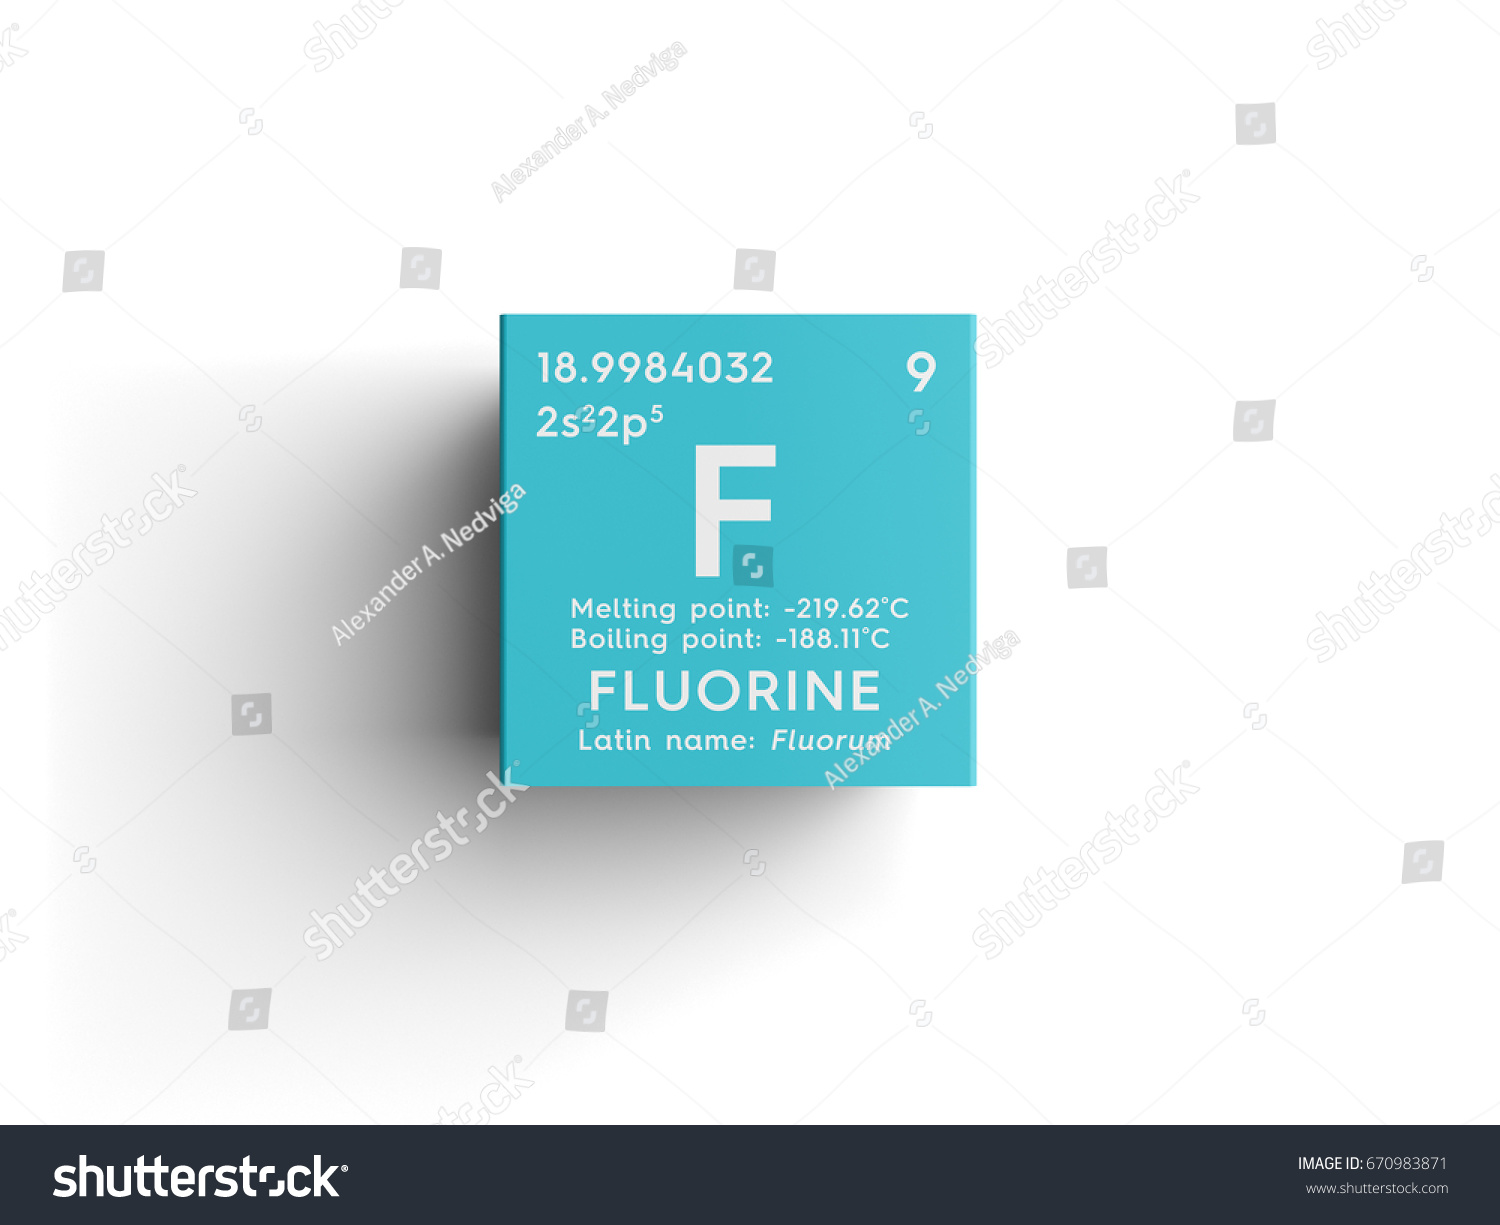 Fluorine halogens chemical element mendeleevs periodic stock fluorine halogens chemical element mendeleevs periodic stock illustration 670983871 shutterstock urtaz Image collections